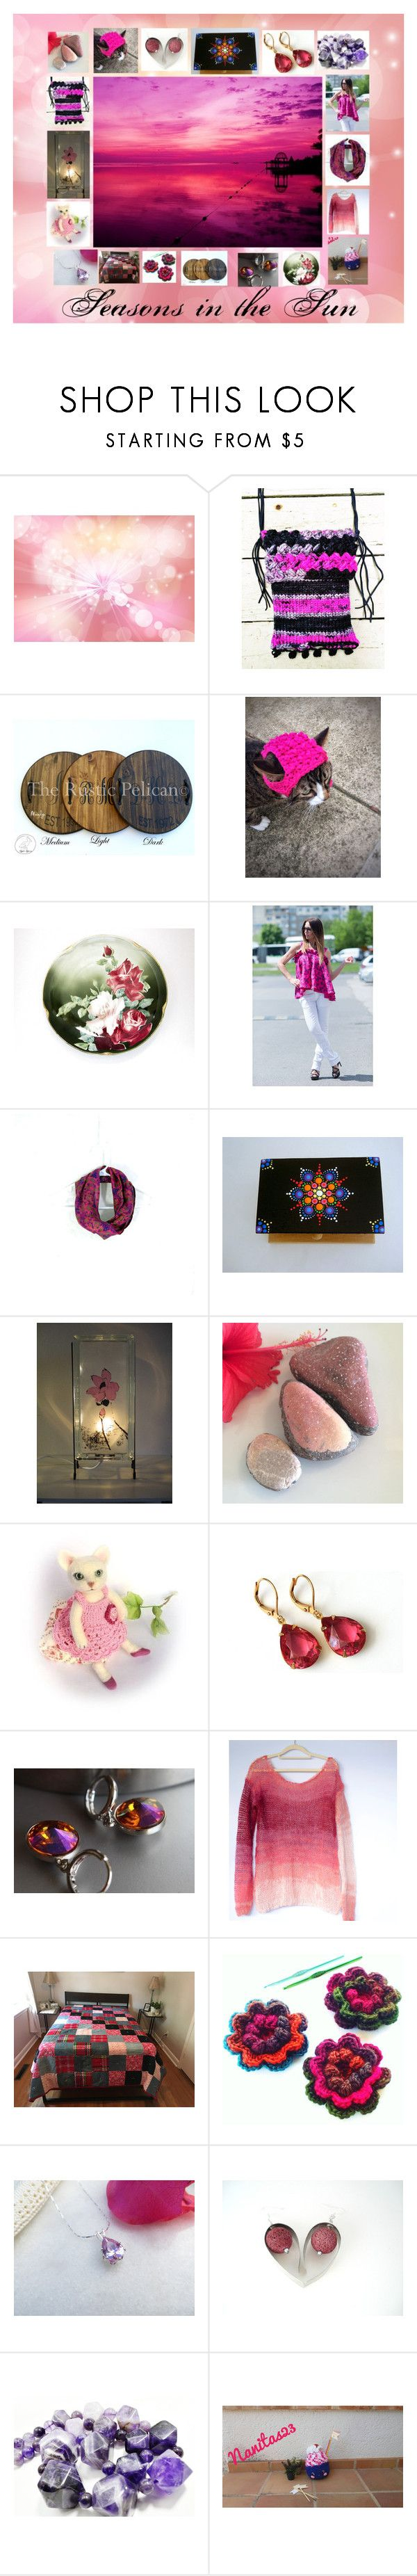 Seasons in the Sun: Handmade & Vintage Gift Ideas by paulinemcewen on Polyvore featuring interior, interiors, interior design, ev, home decor, interior decorating, rustic, vintage and country